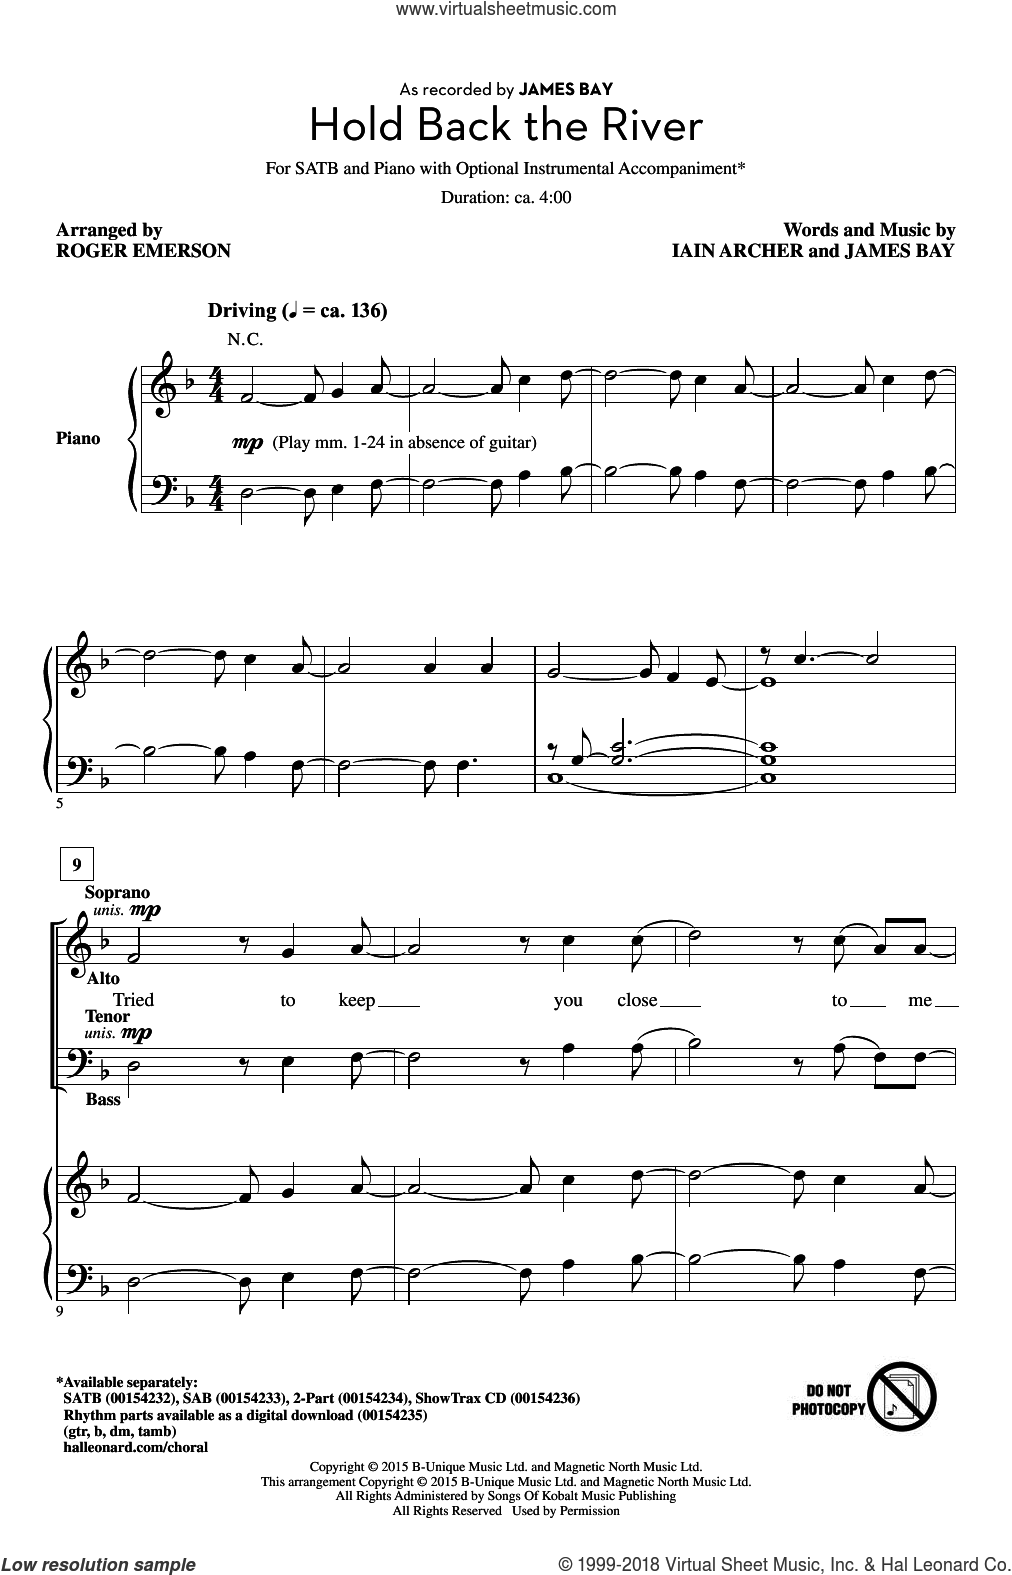 Hold Back The River sheet music for choir (SATB: soprano, alto, tenor, bass) by Roger Emerson, Iain Archer and James Bay, intermediate skill level